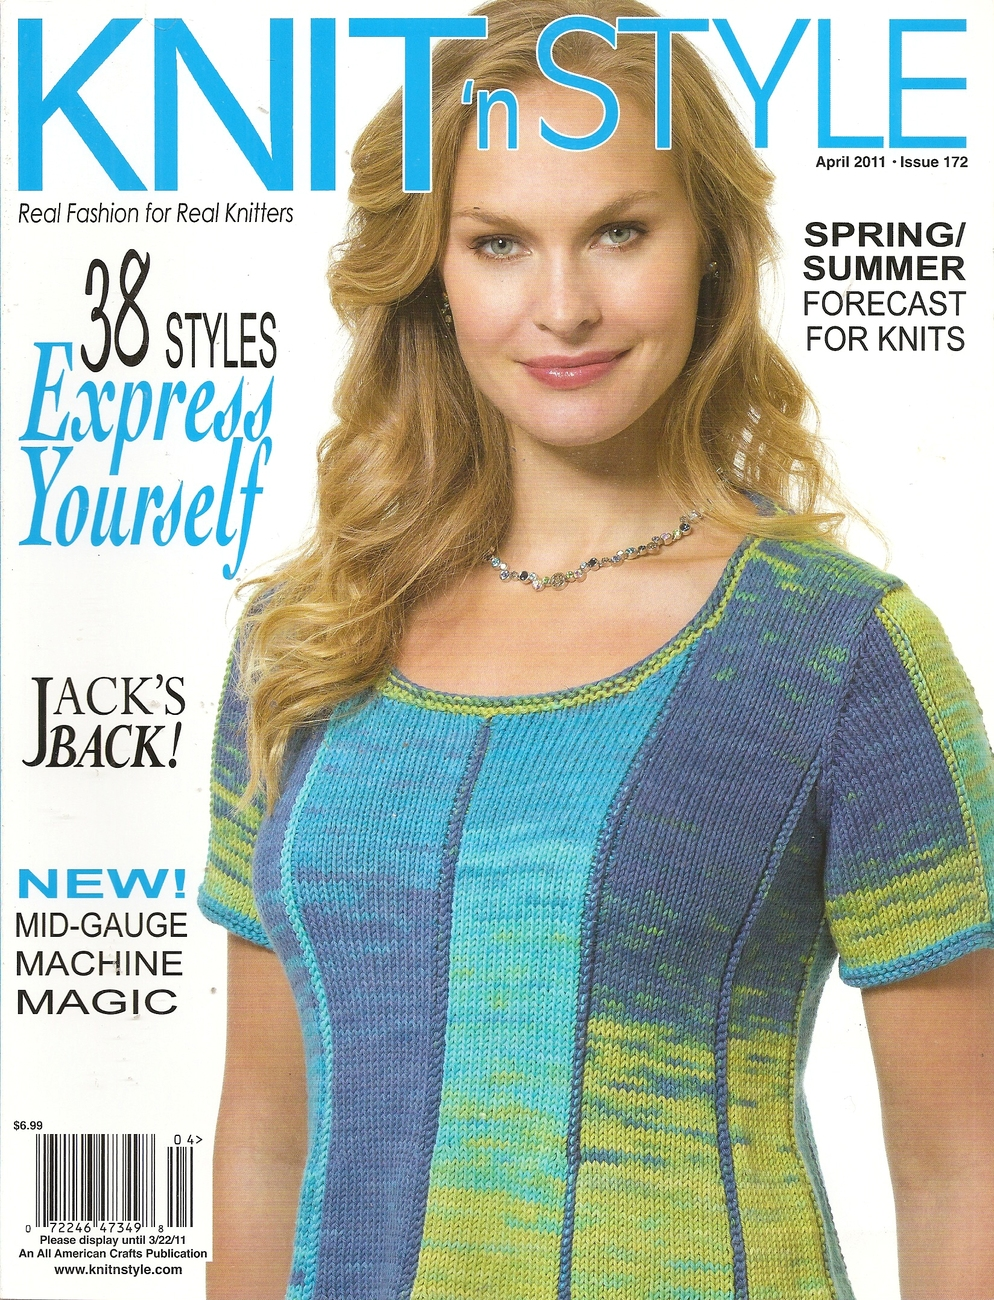 Primary image for KNIT N STYLE APRIL 2011